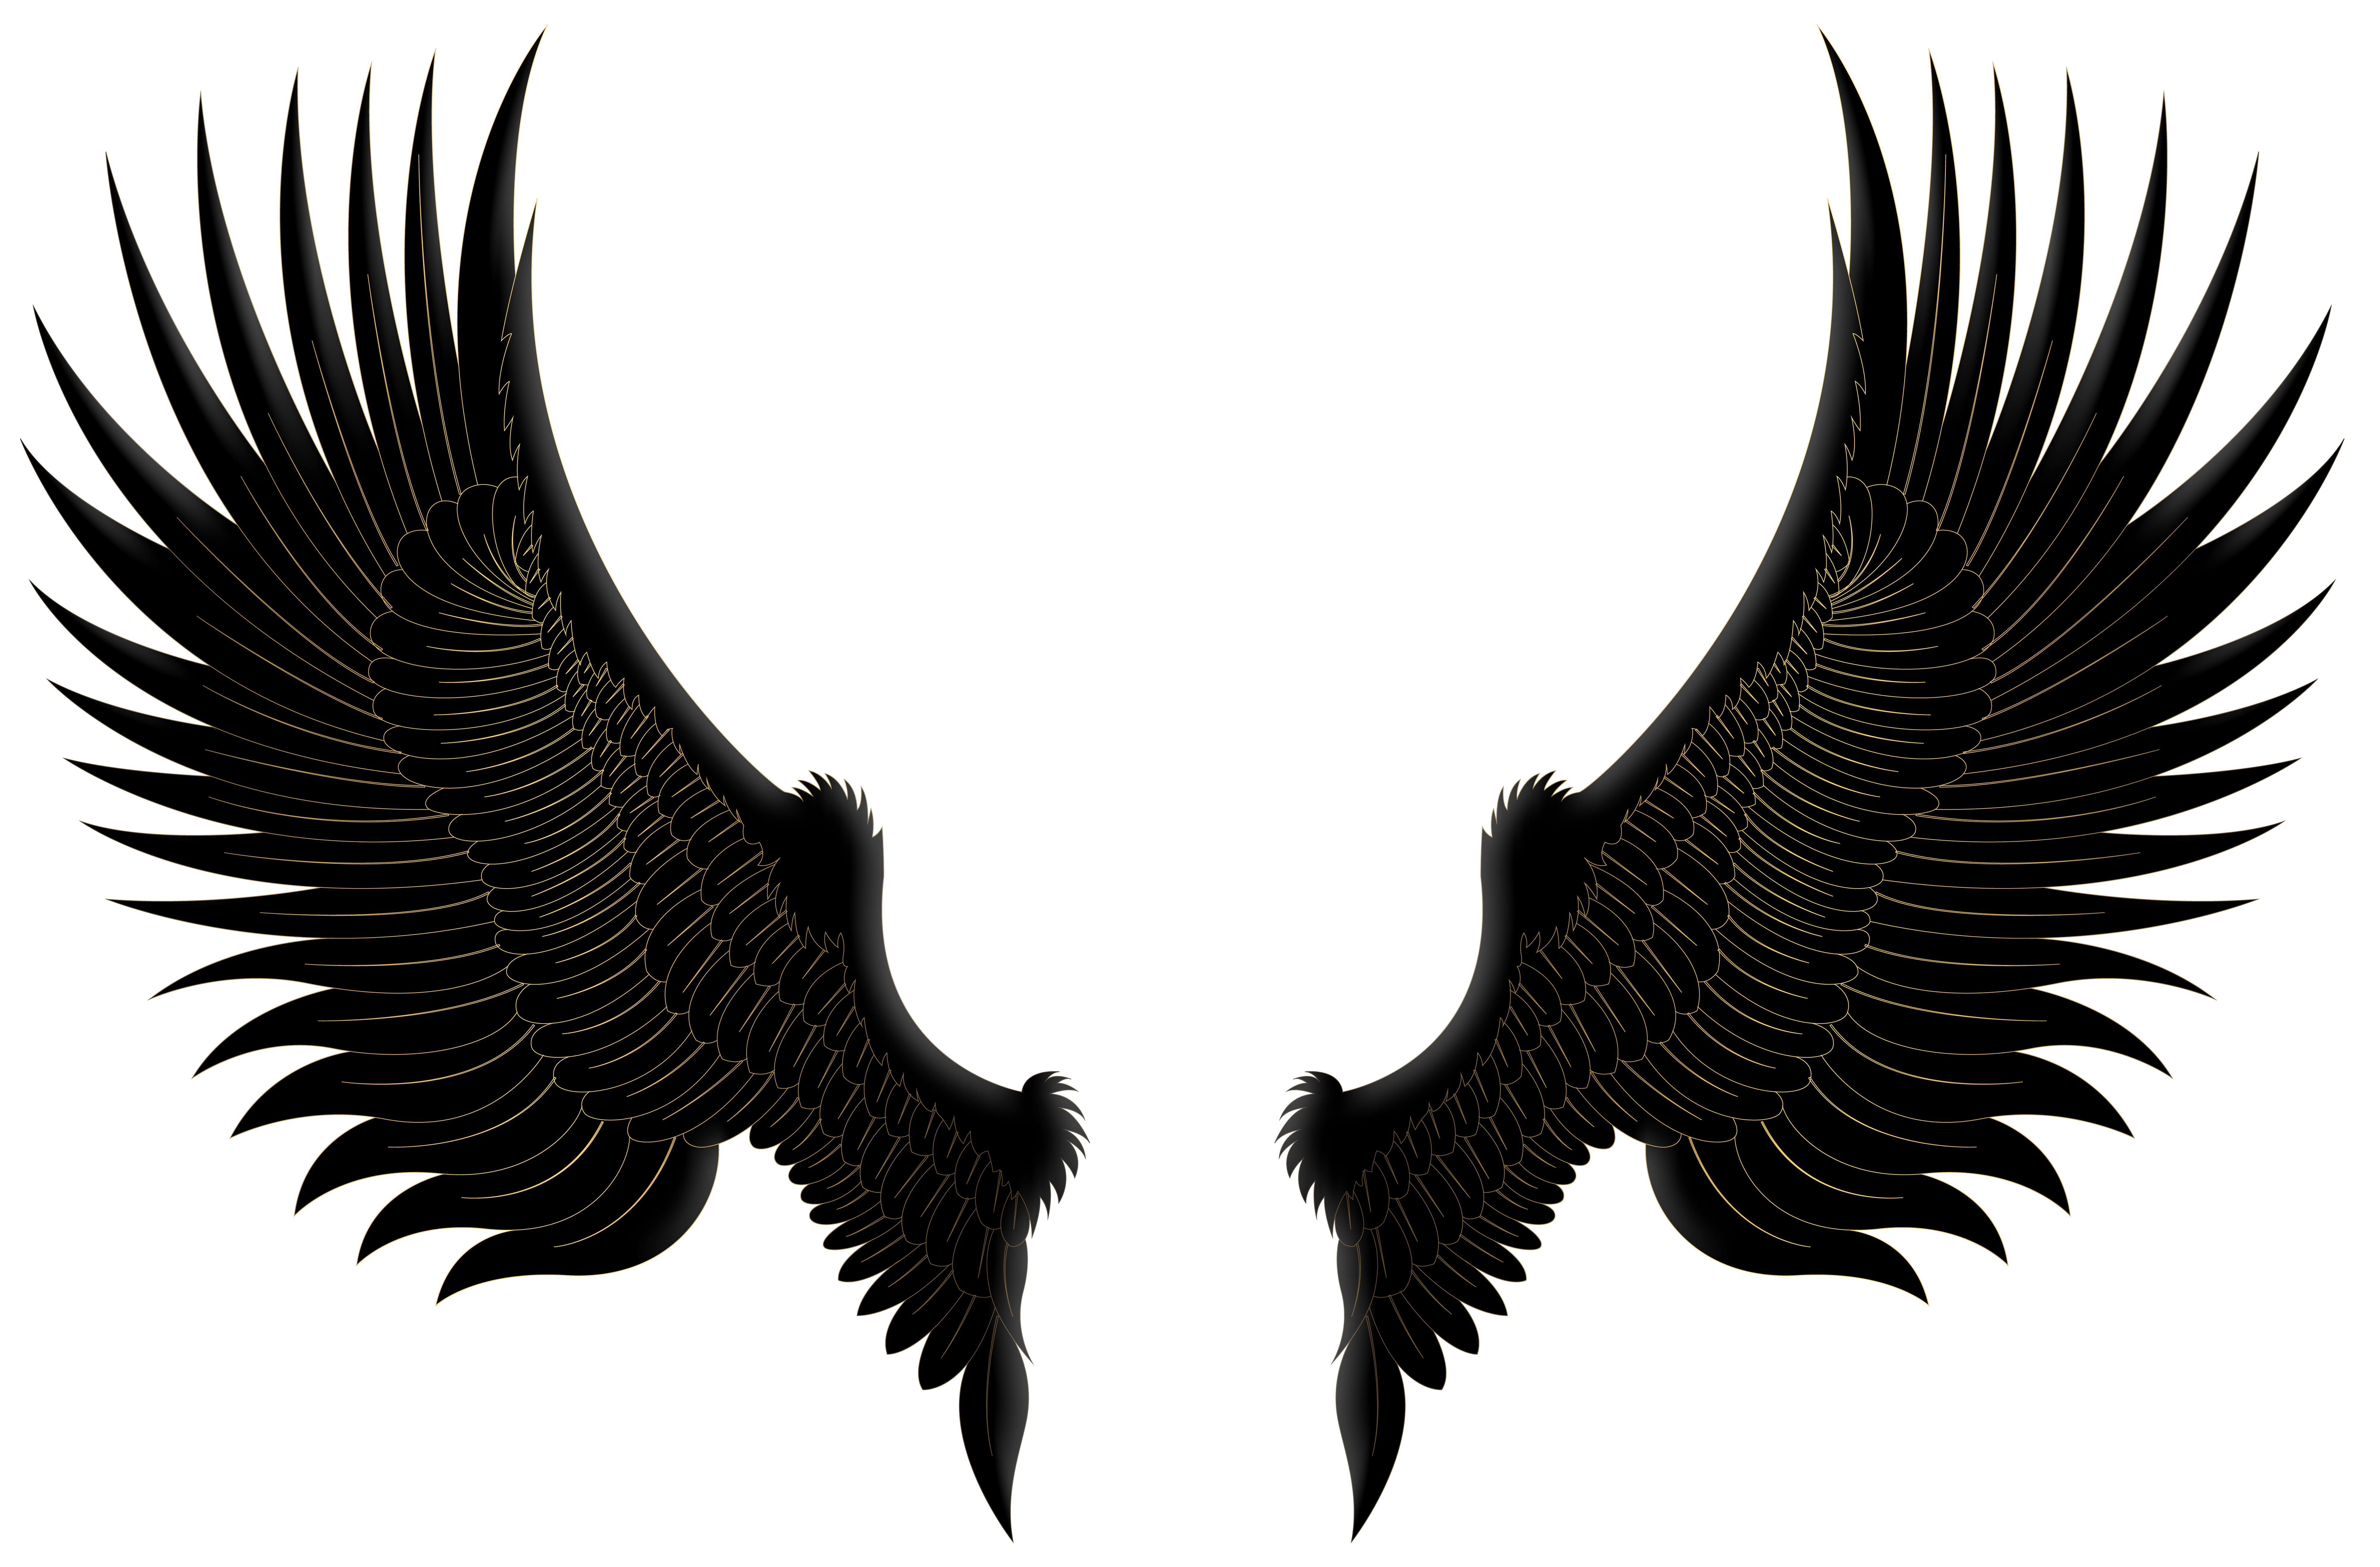 Cartoon wing png. Black gold wings clip